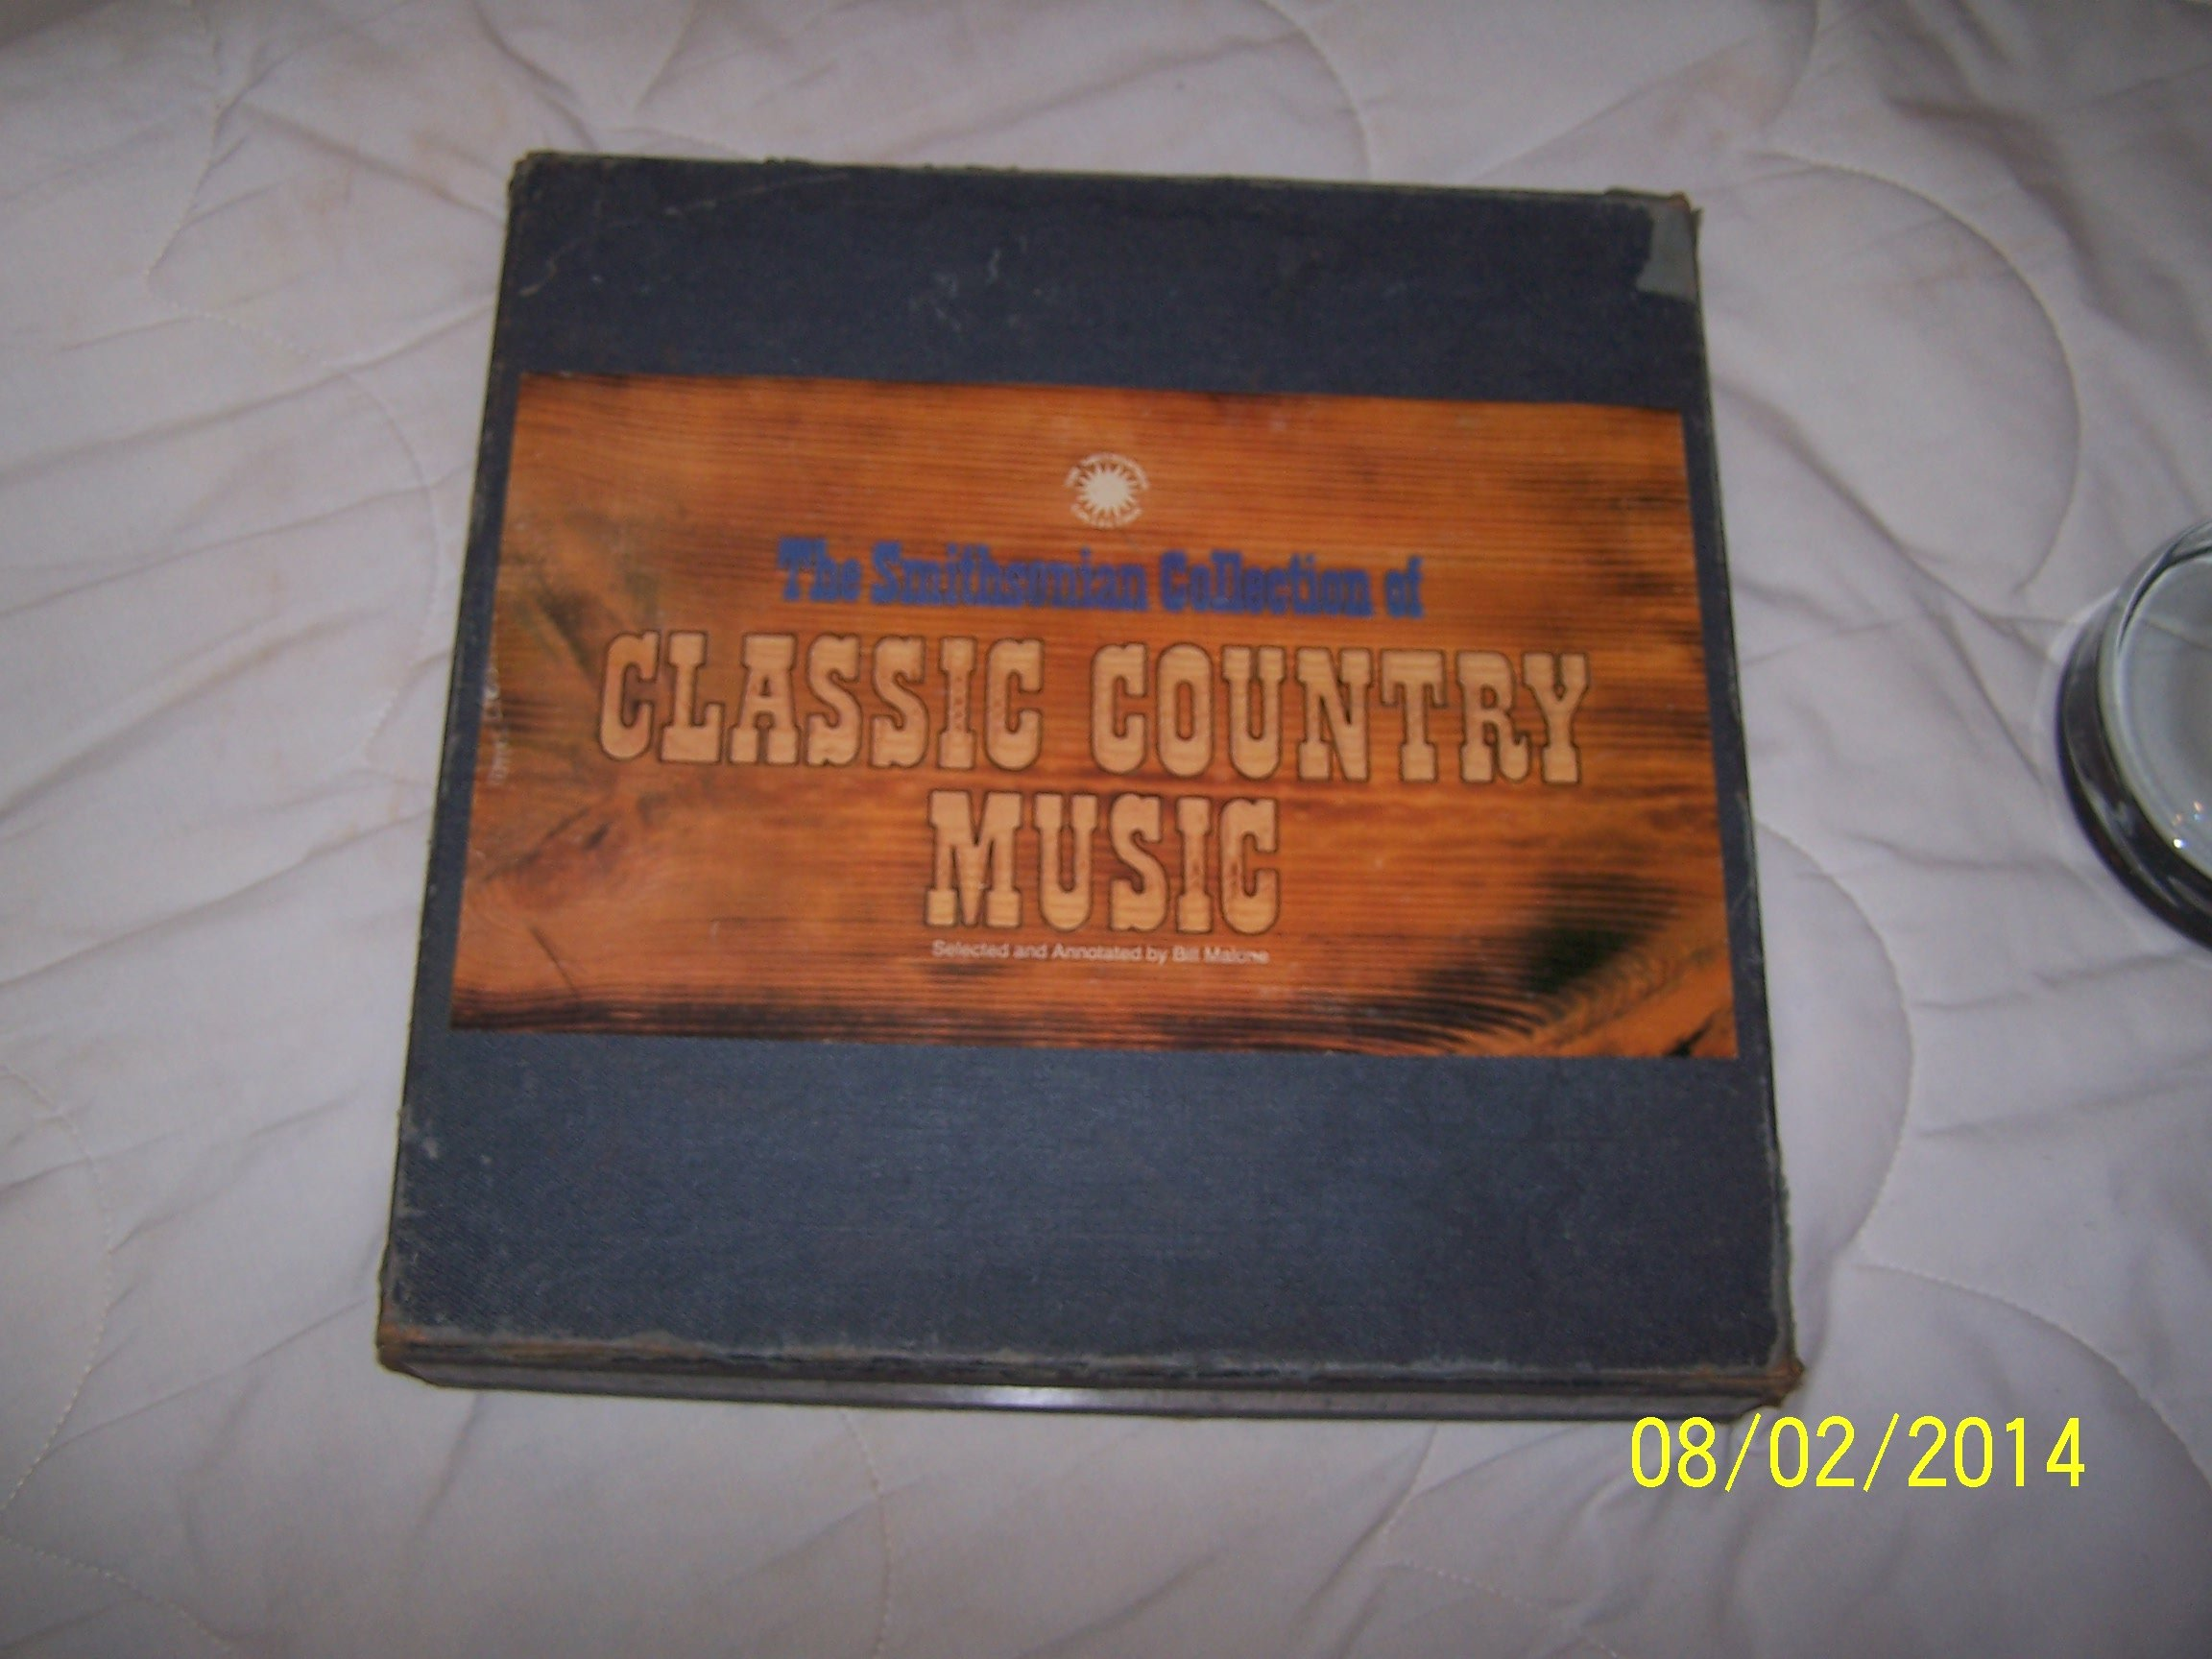 The Smithsonian Collection of Classic Country Music